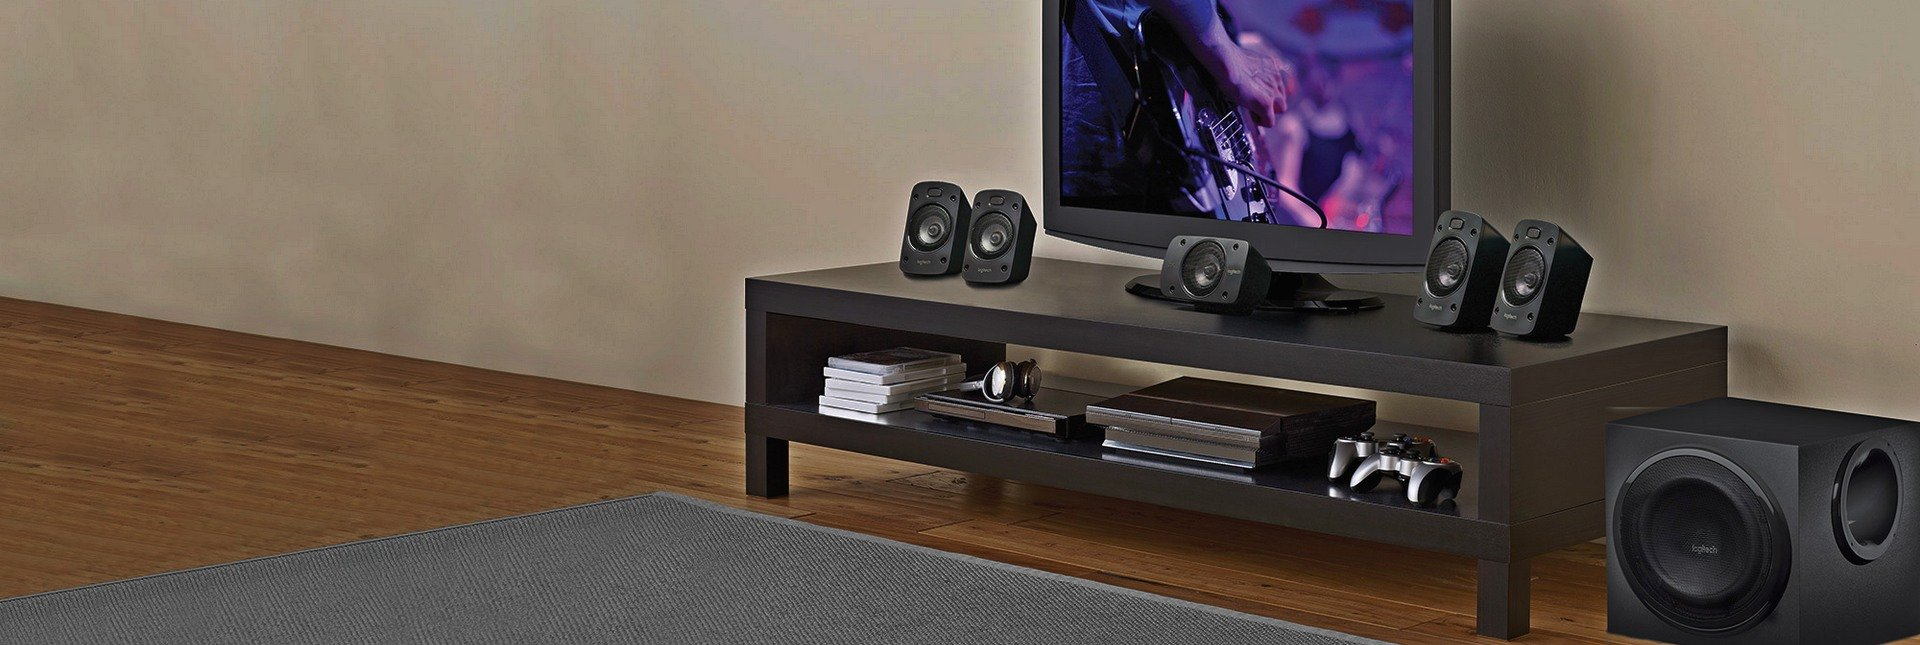 hight resolution of best home theater systems under 500